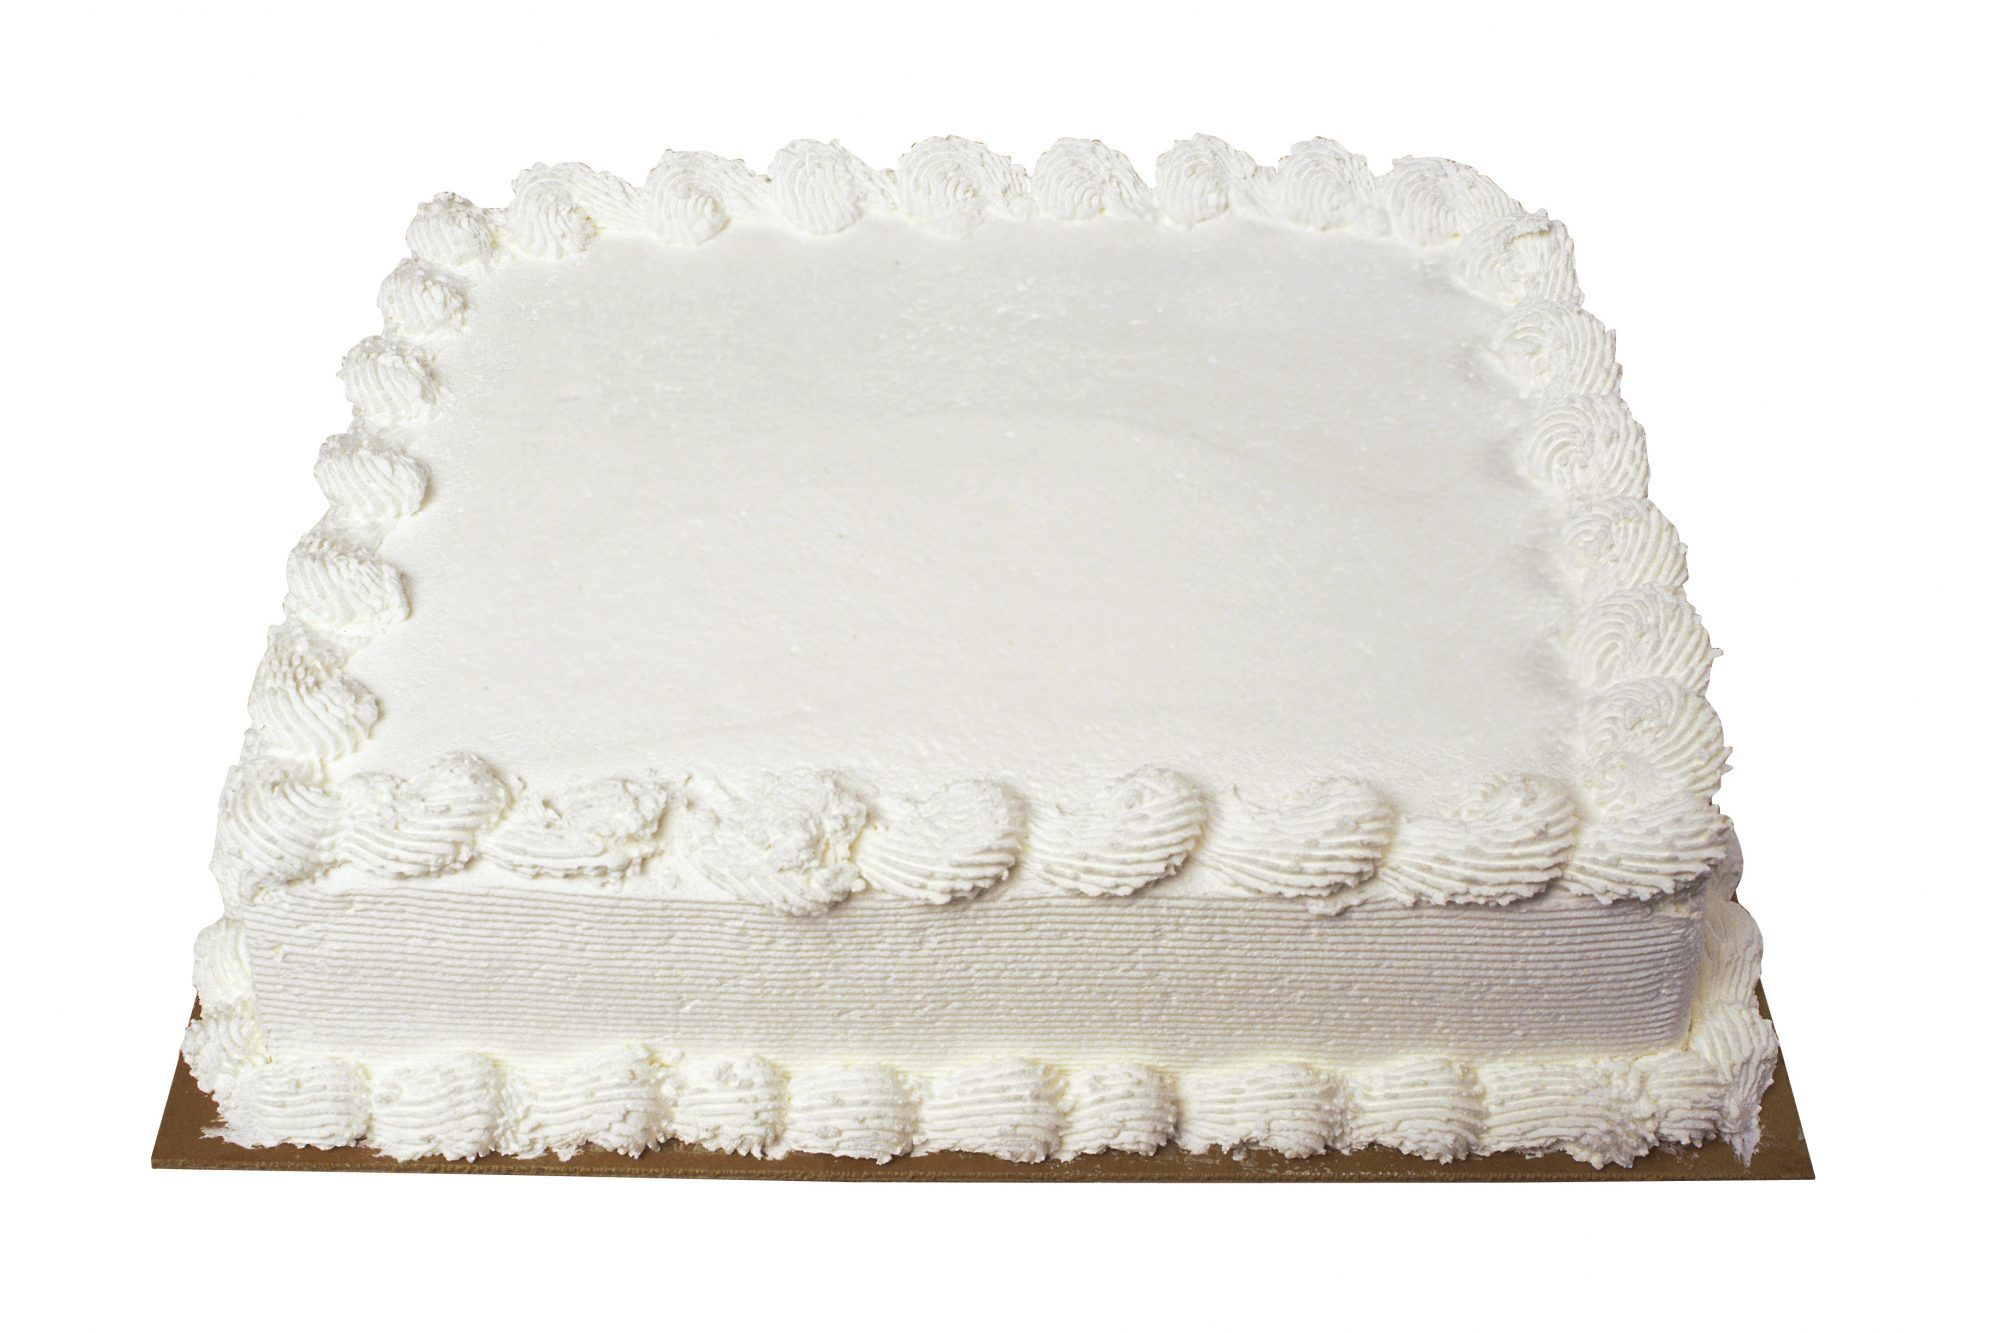 getty-sheet-cake-image